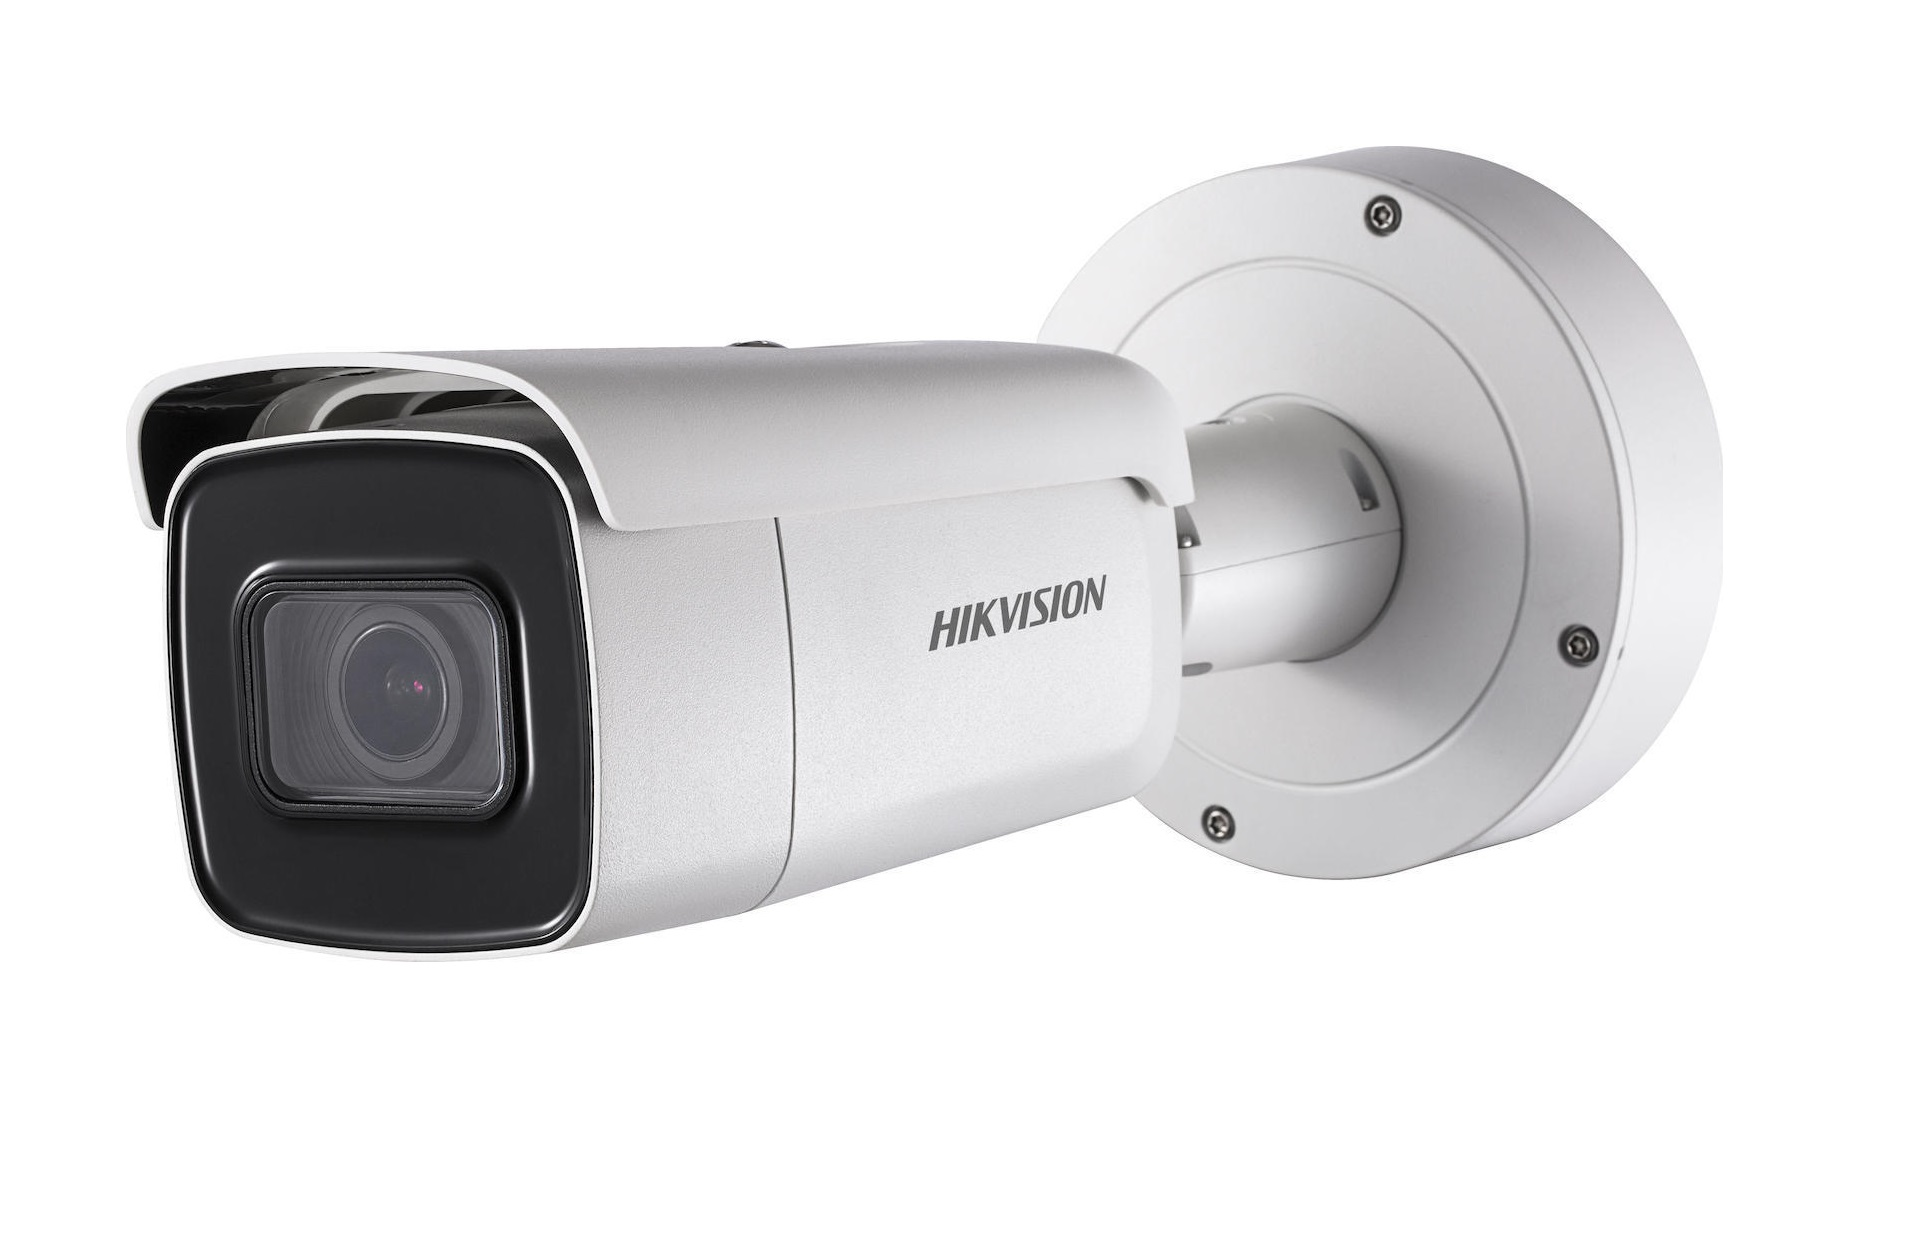 Hikvision DS-2CD2645FWD-IZS Δικτυακή Κάμερα 4MP Darkfighter Φακός Varifocal 2.8-12mm